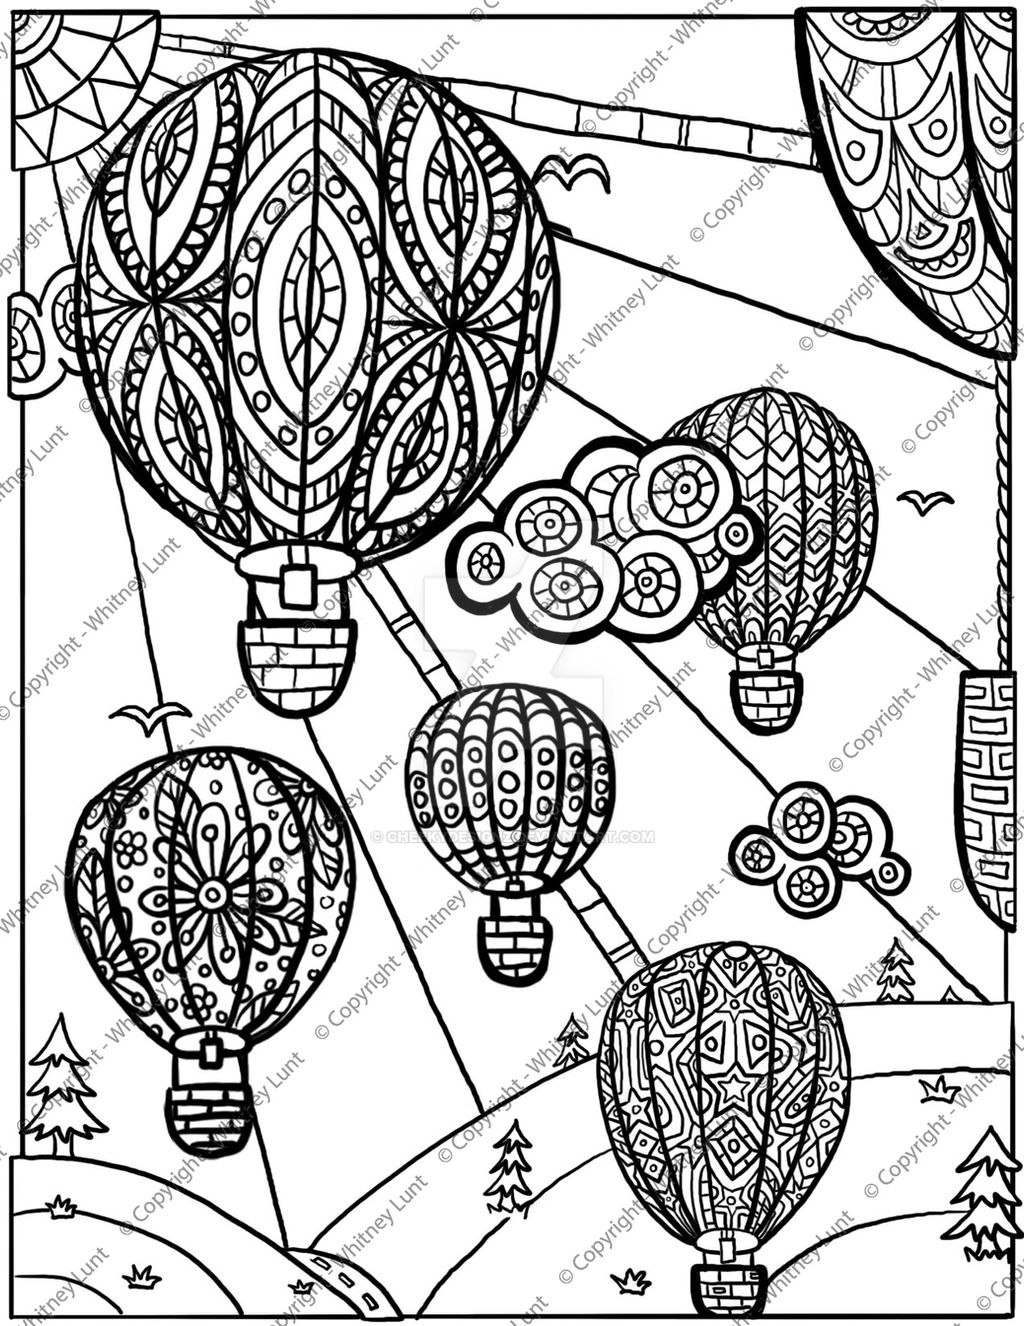 Full page balloon color page or template | Balão para colorir ... | 1326x1024